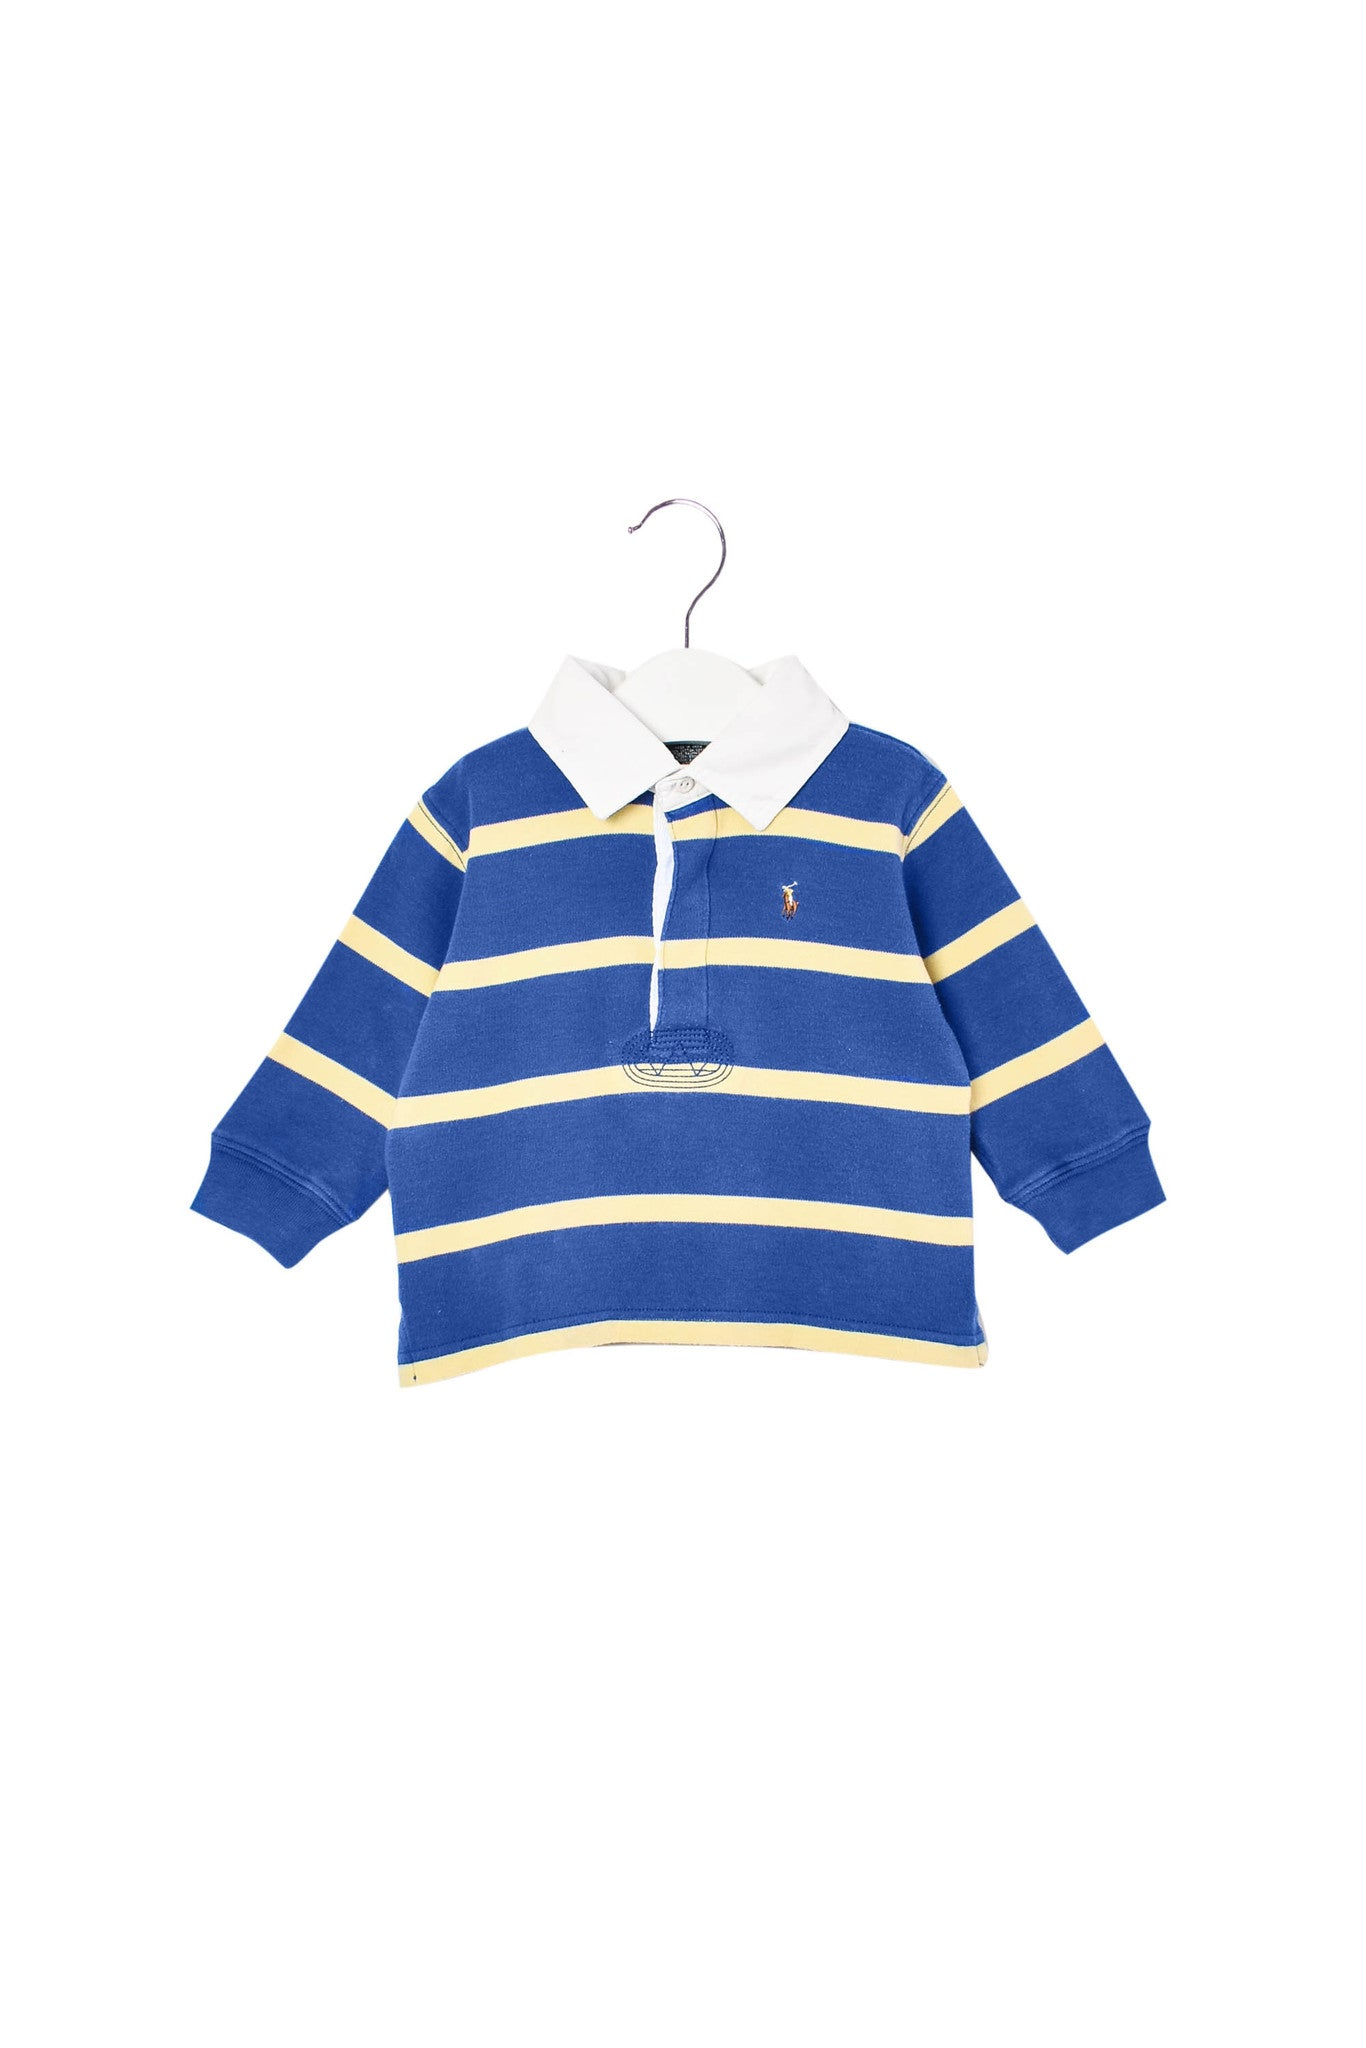 10003537 Polo Ralph Lauren Baby~Polo 12M at Retykle